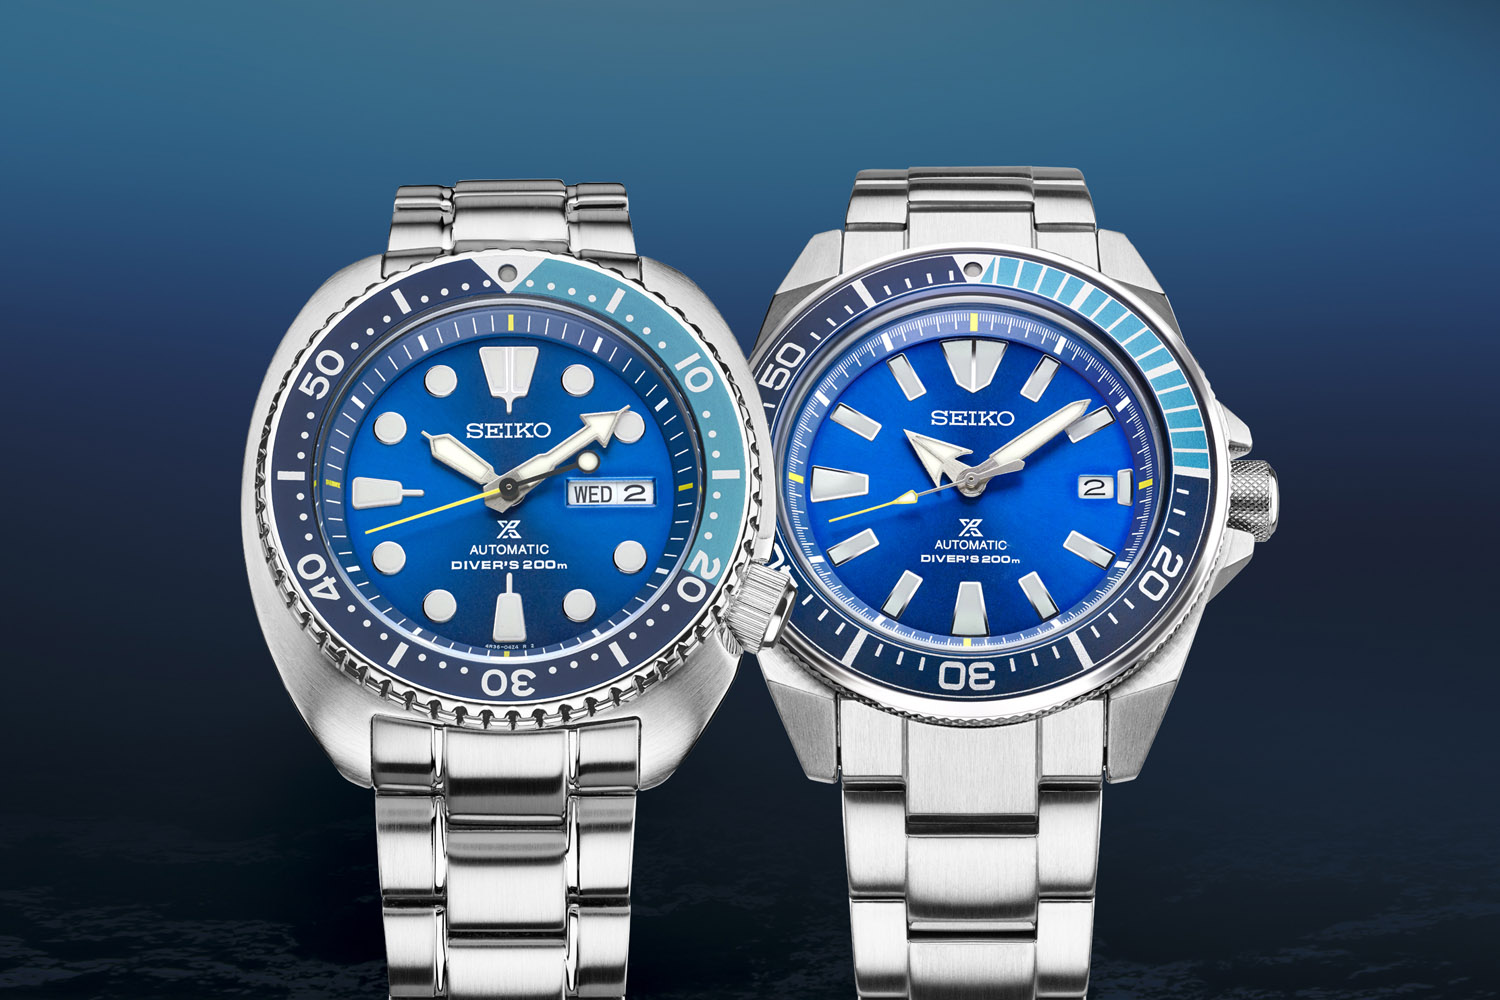 Seiko Prospex Turtle SRPB11 and Samurai SRPB09 Blue Lagoon Limited Editions